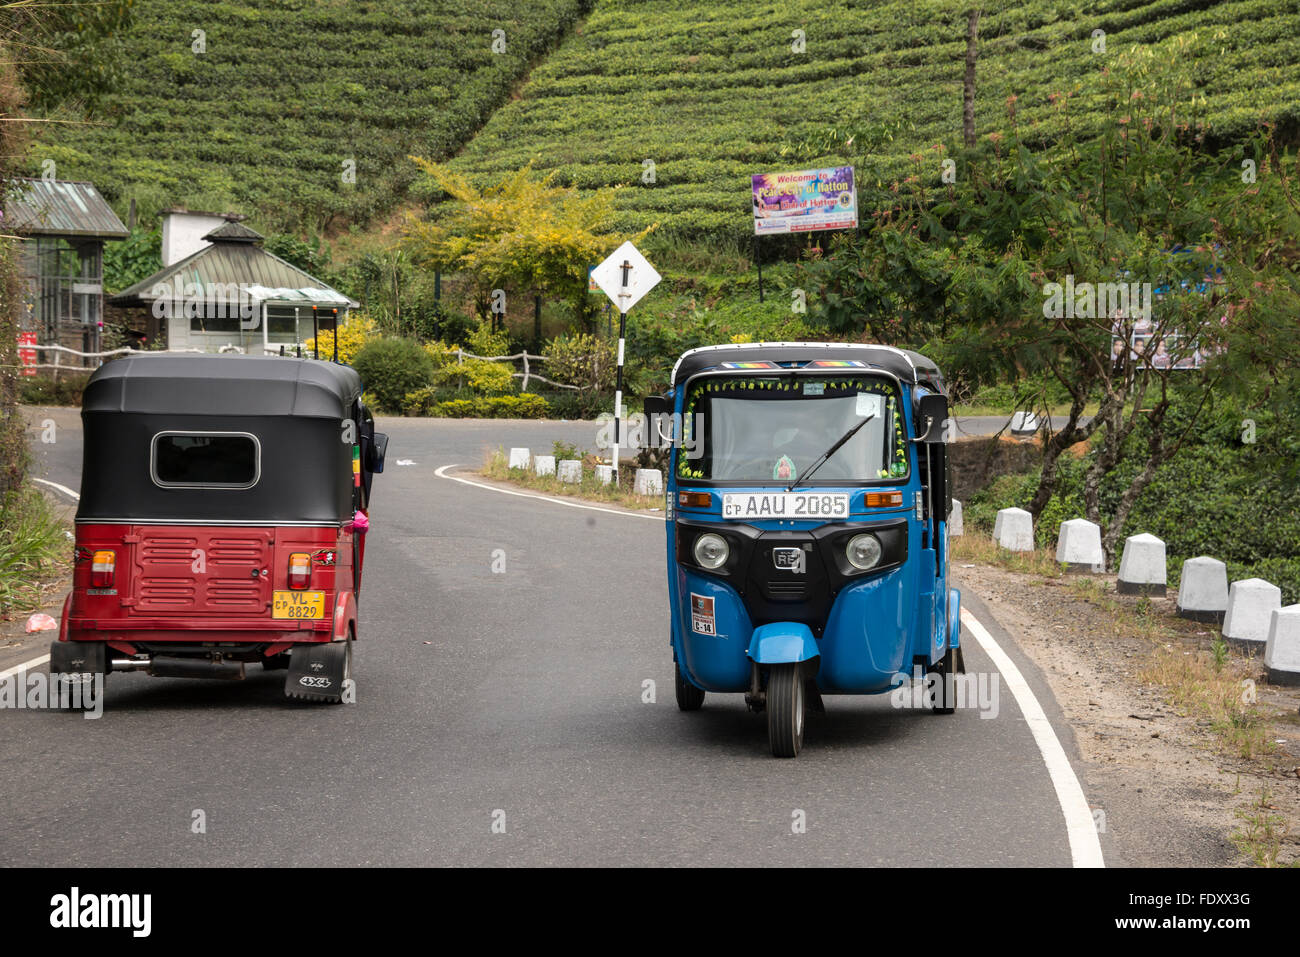 Tuk tuks or three wheelers as they are called in sri lanka provide a